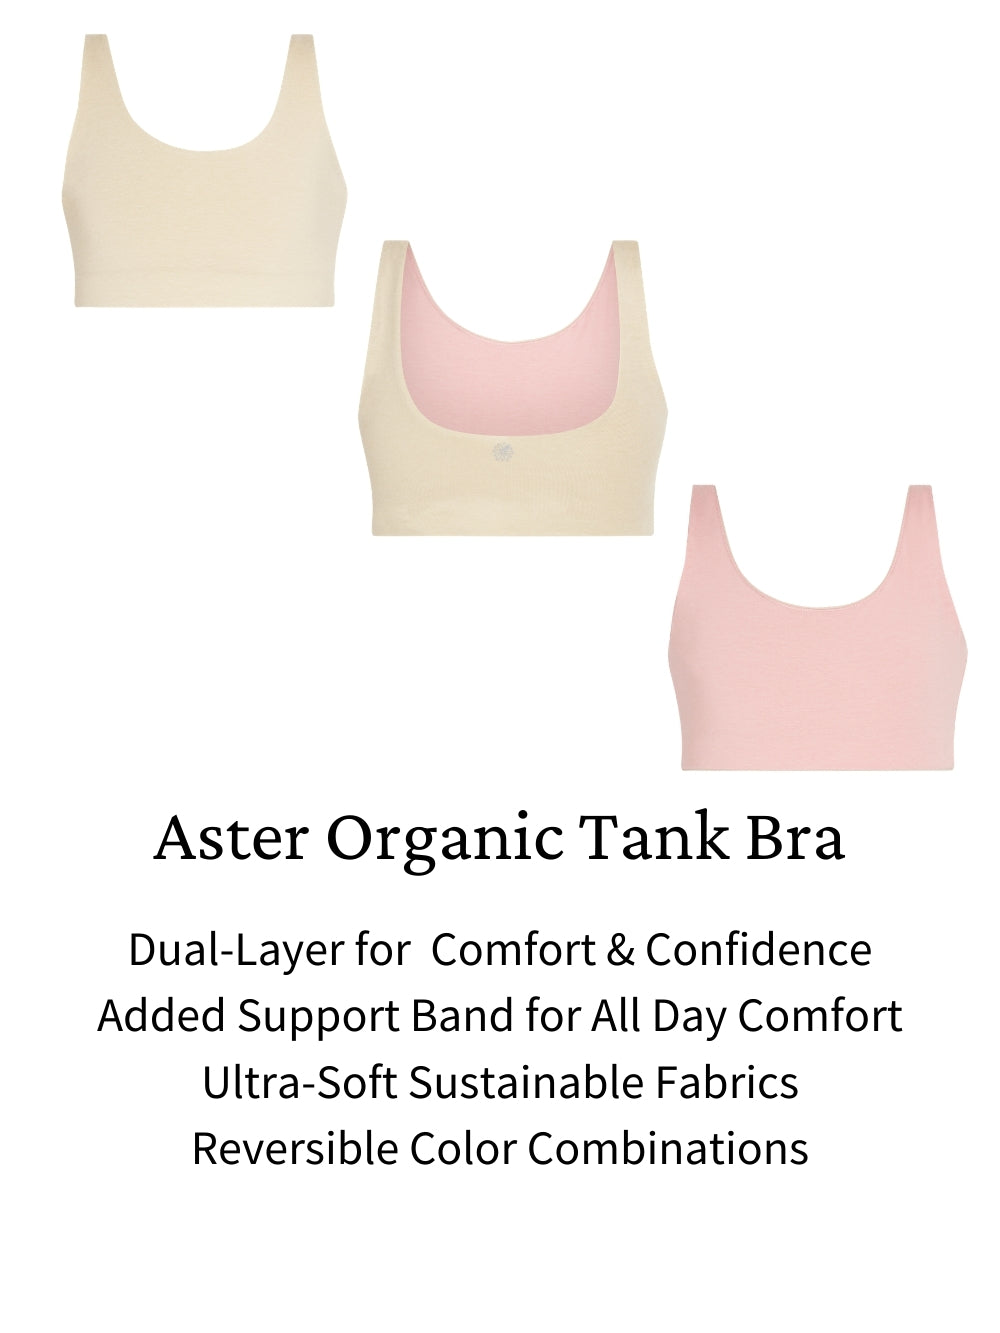 Aster Tank girls organic bras. Sustainably soft support and coverage.